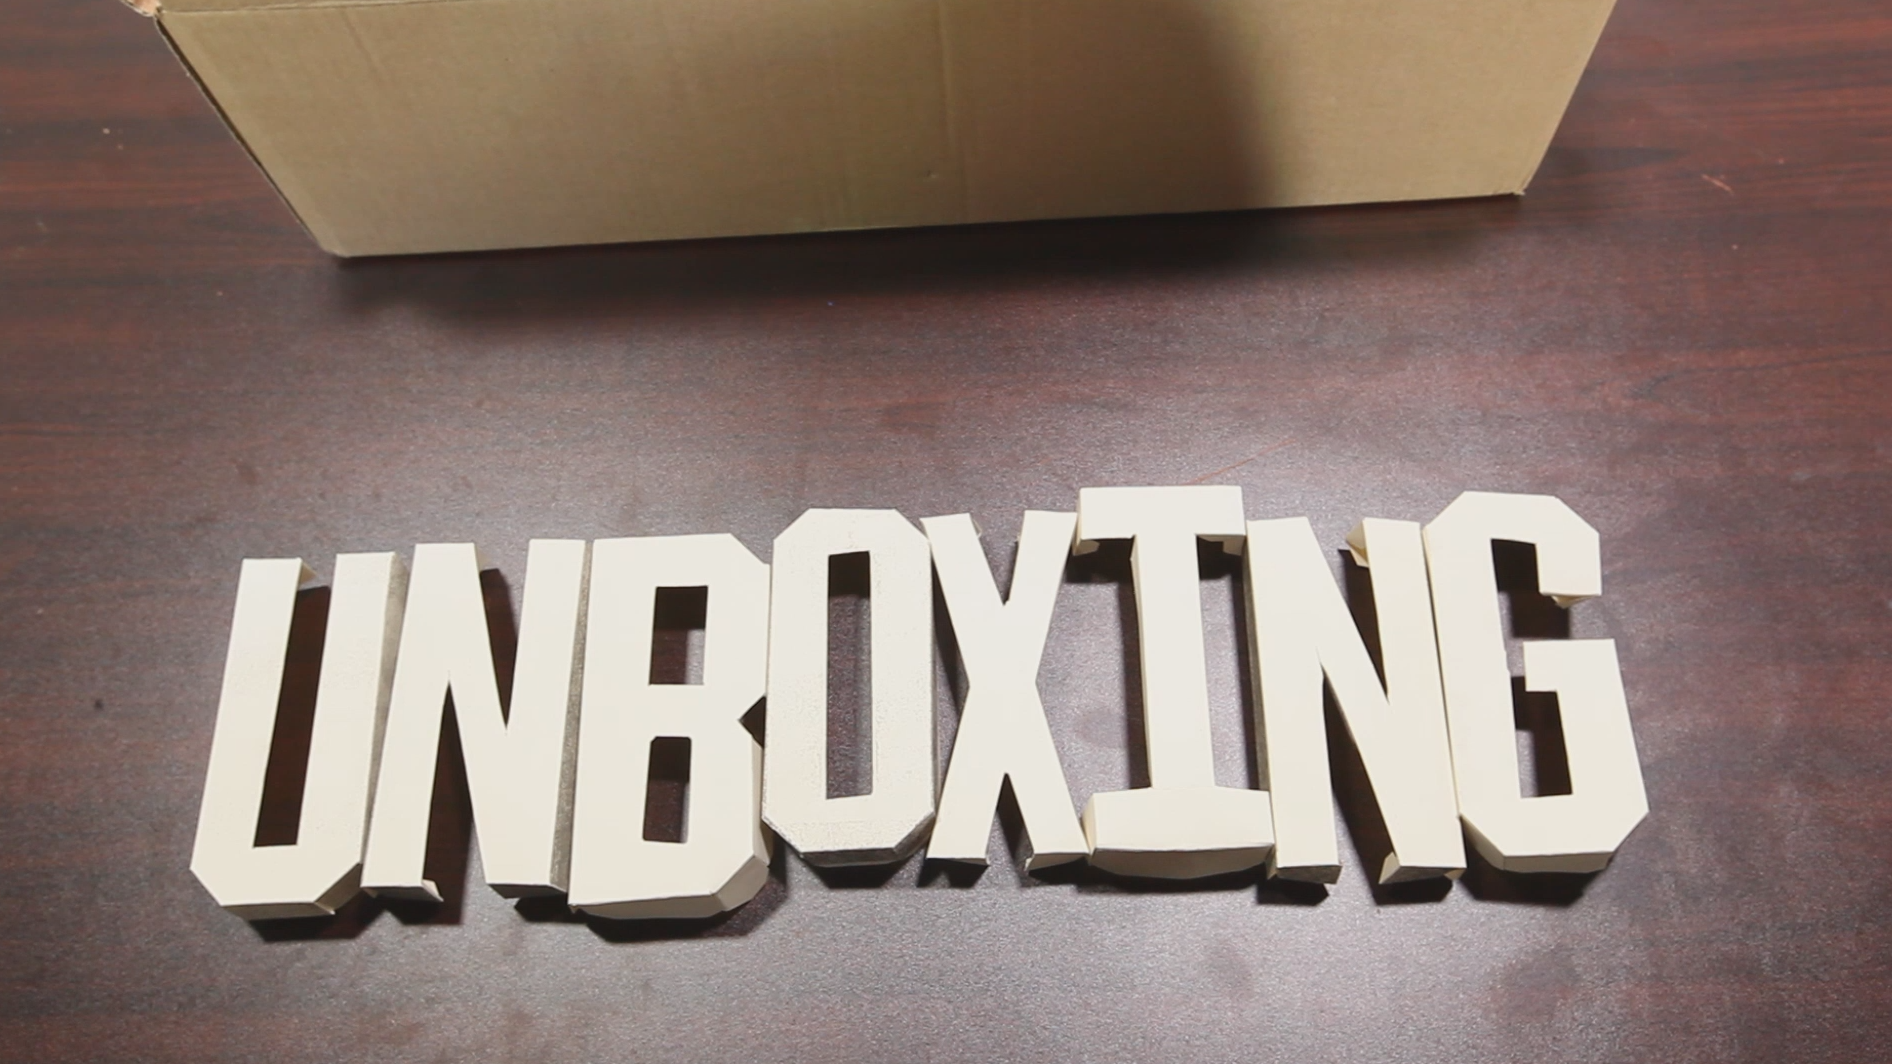 The word UNBOXING, made of cardboard letters, appears on a table.